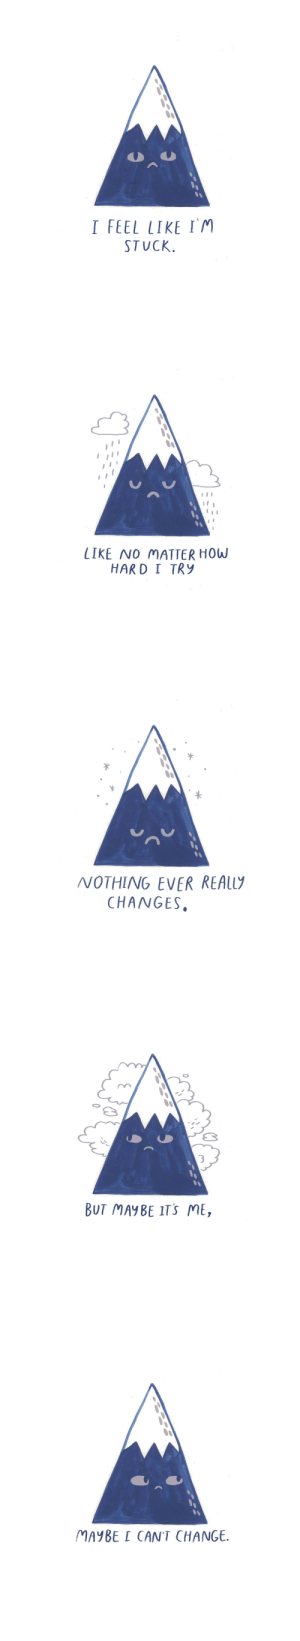 Tumblr, Blog, and Http: I FEEL LIKE IM  STUCK.   LIKE NO MATTER HOW  HARD I TRy   NOTHING EVER REAL  CHANGES.   3  BUT MAYBE ITS ME,   MAYBE I CAN'T CHANGE. thesadghostclub: Maybe I'm stuck as the person I am and now matter how hard I try to heal and fix myself nothing will ever really change.   Shop / About Us / FAQ's / comics / Archive / Subscribe / Theme